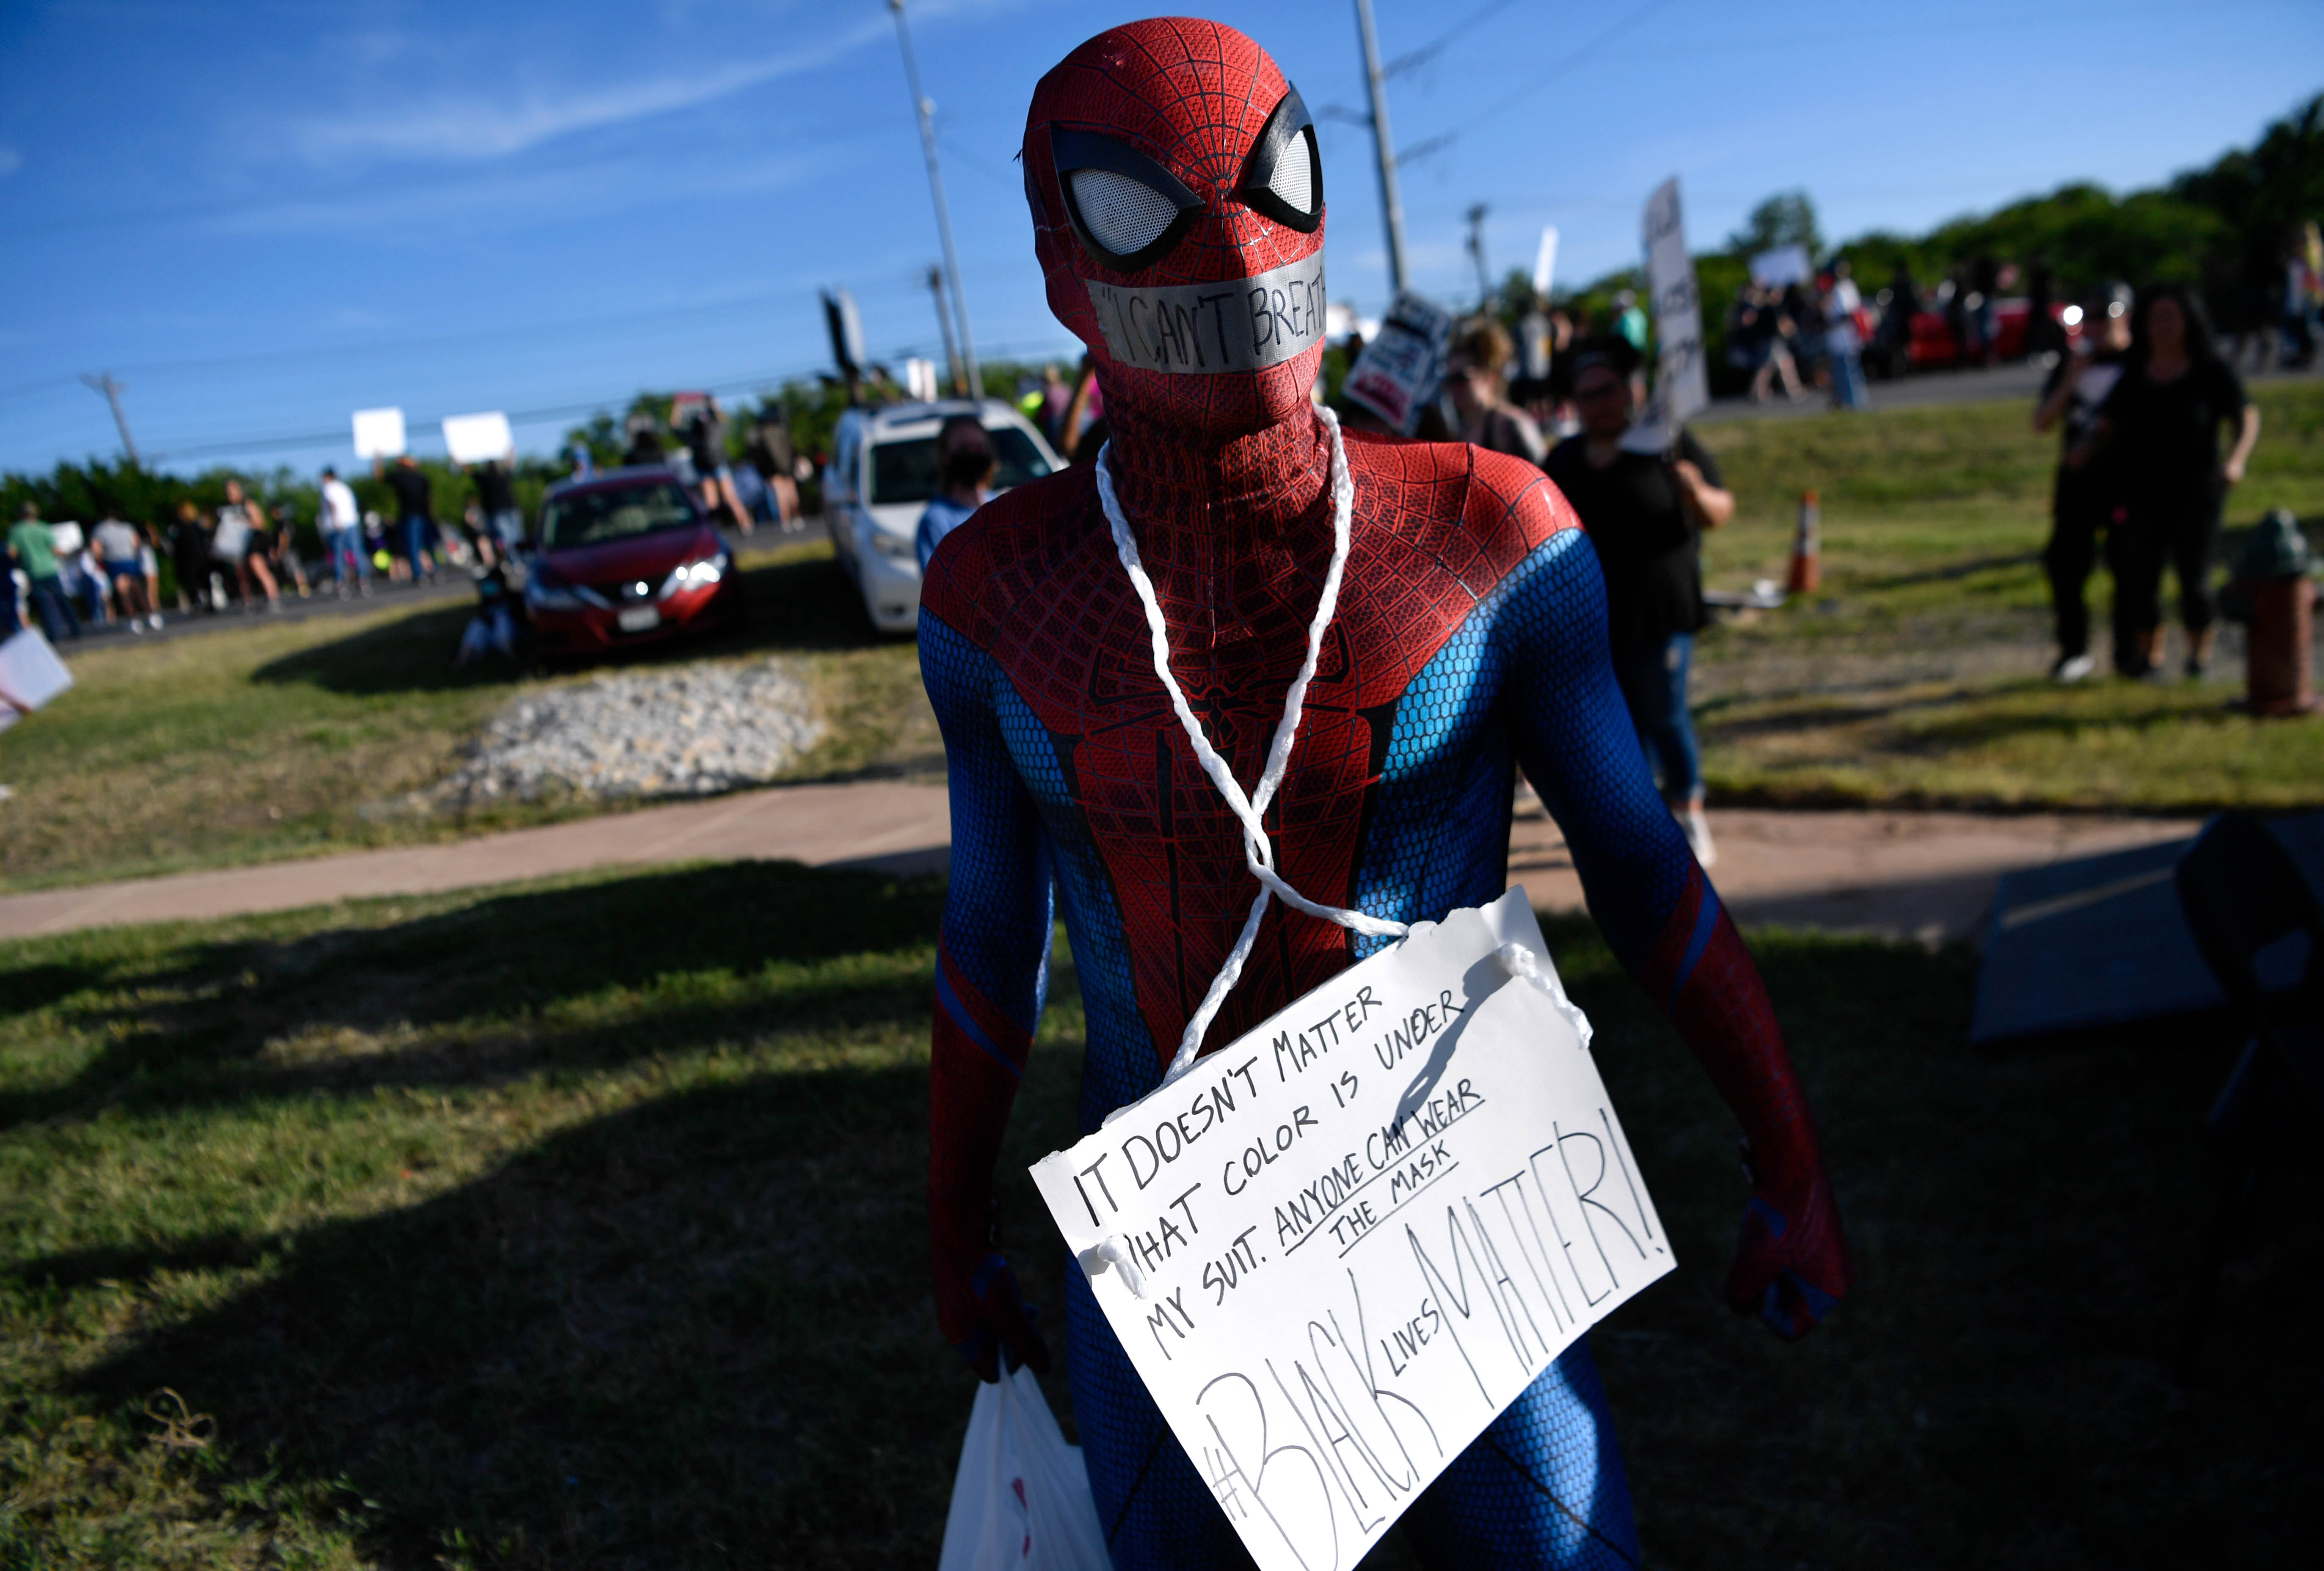 Chris Craig wore a Spider Man costume and a sign to show support for Black Lives Matter at Thursday's rally near the Martin Luther King Jr. sign on E. Highway 80 June 4, 2020.